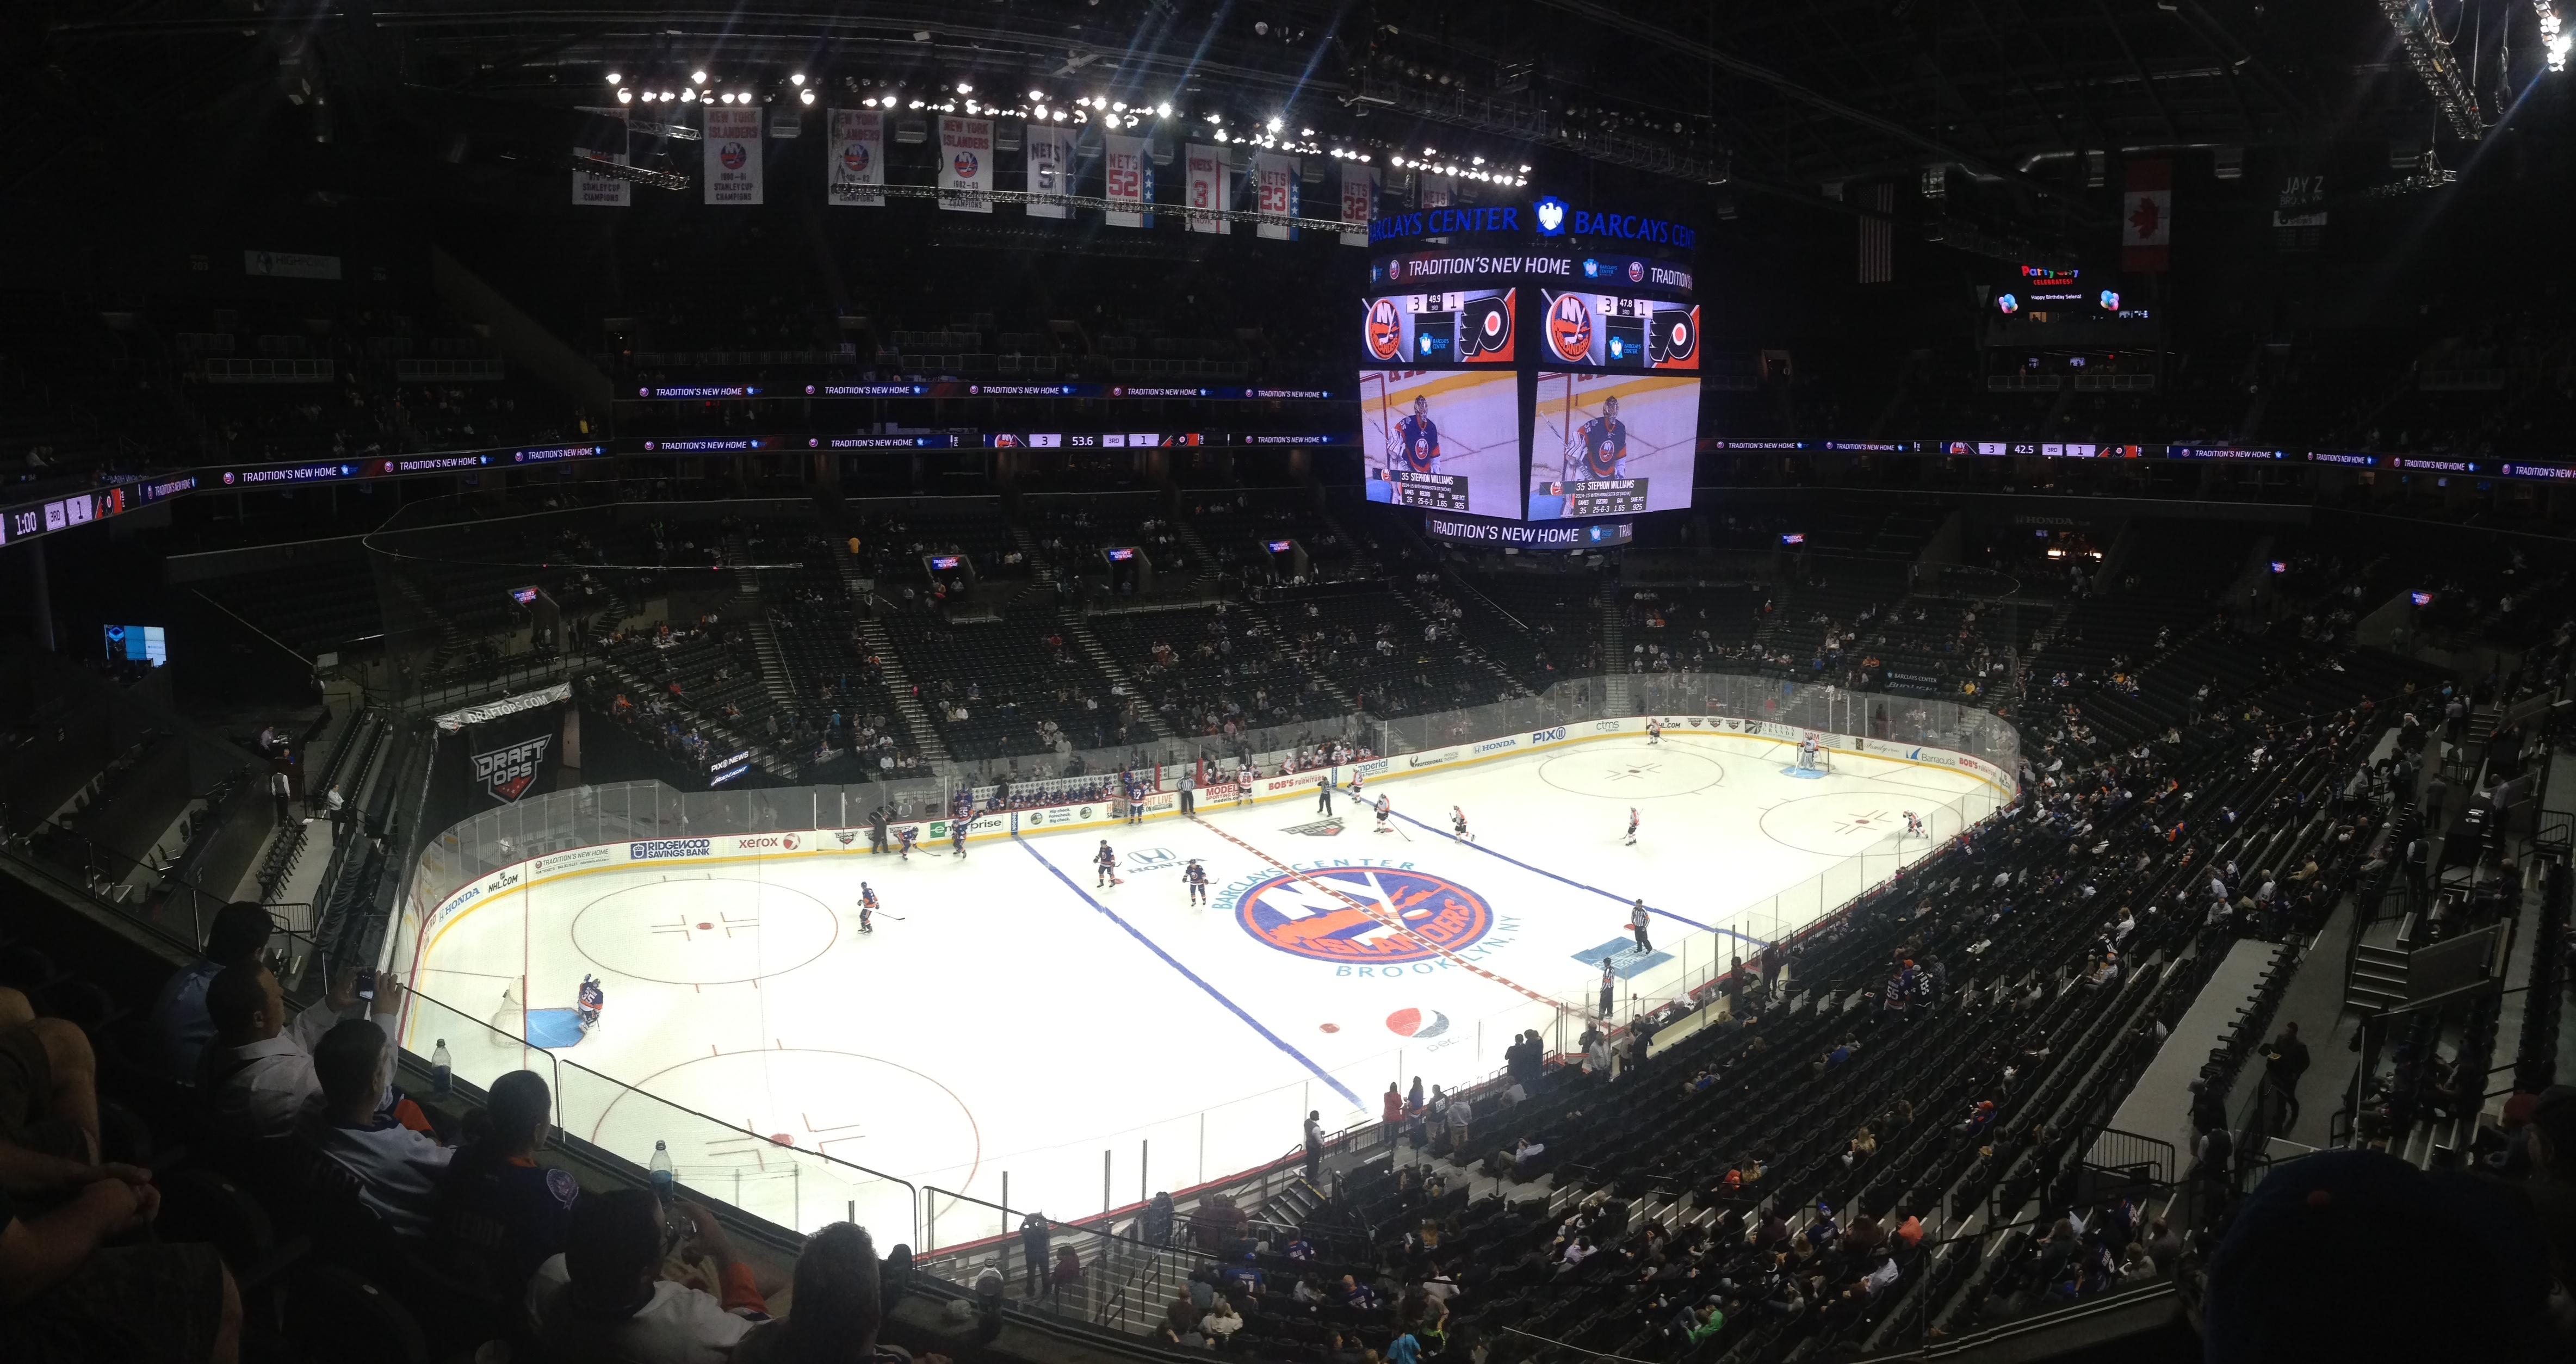 Barclays Center Section 228 Row 4 Seat 10